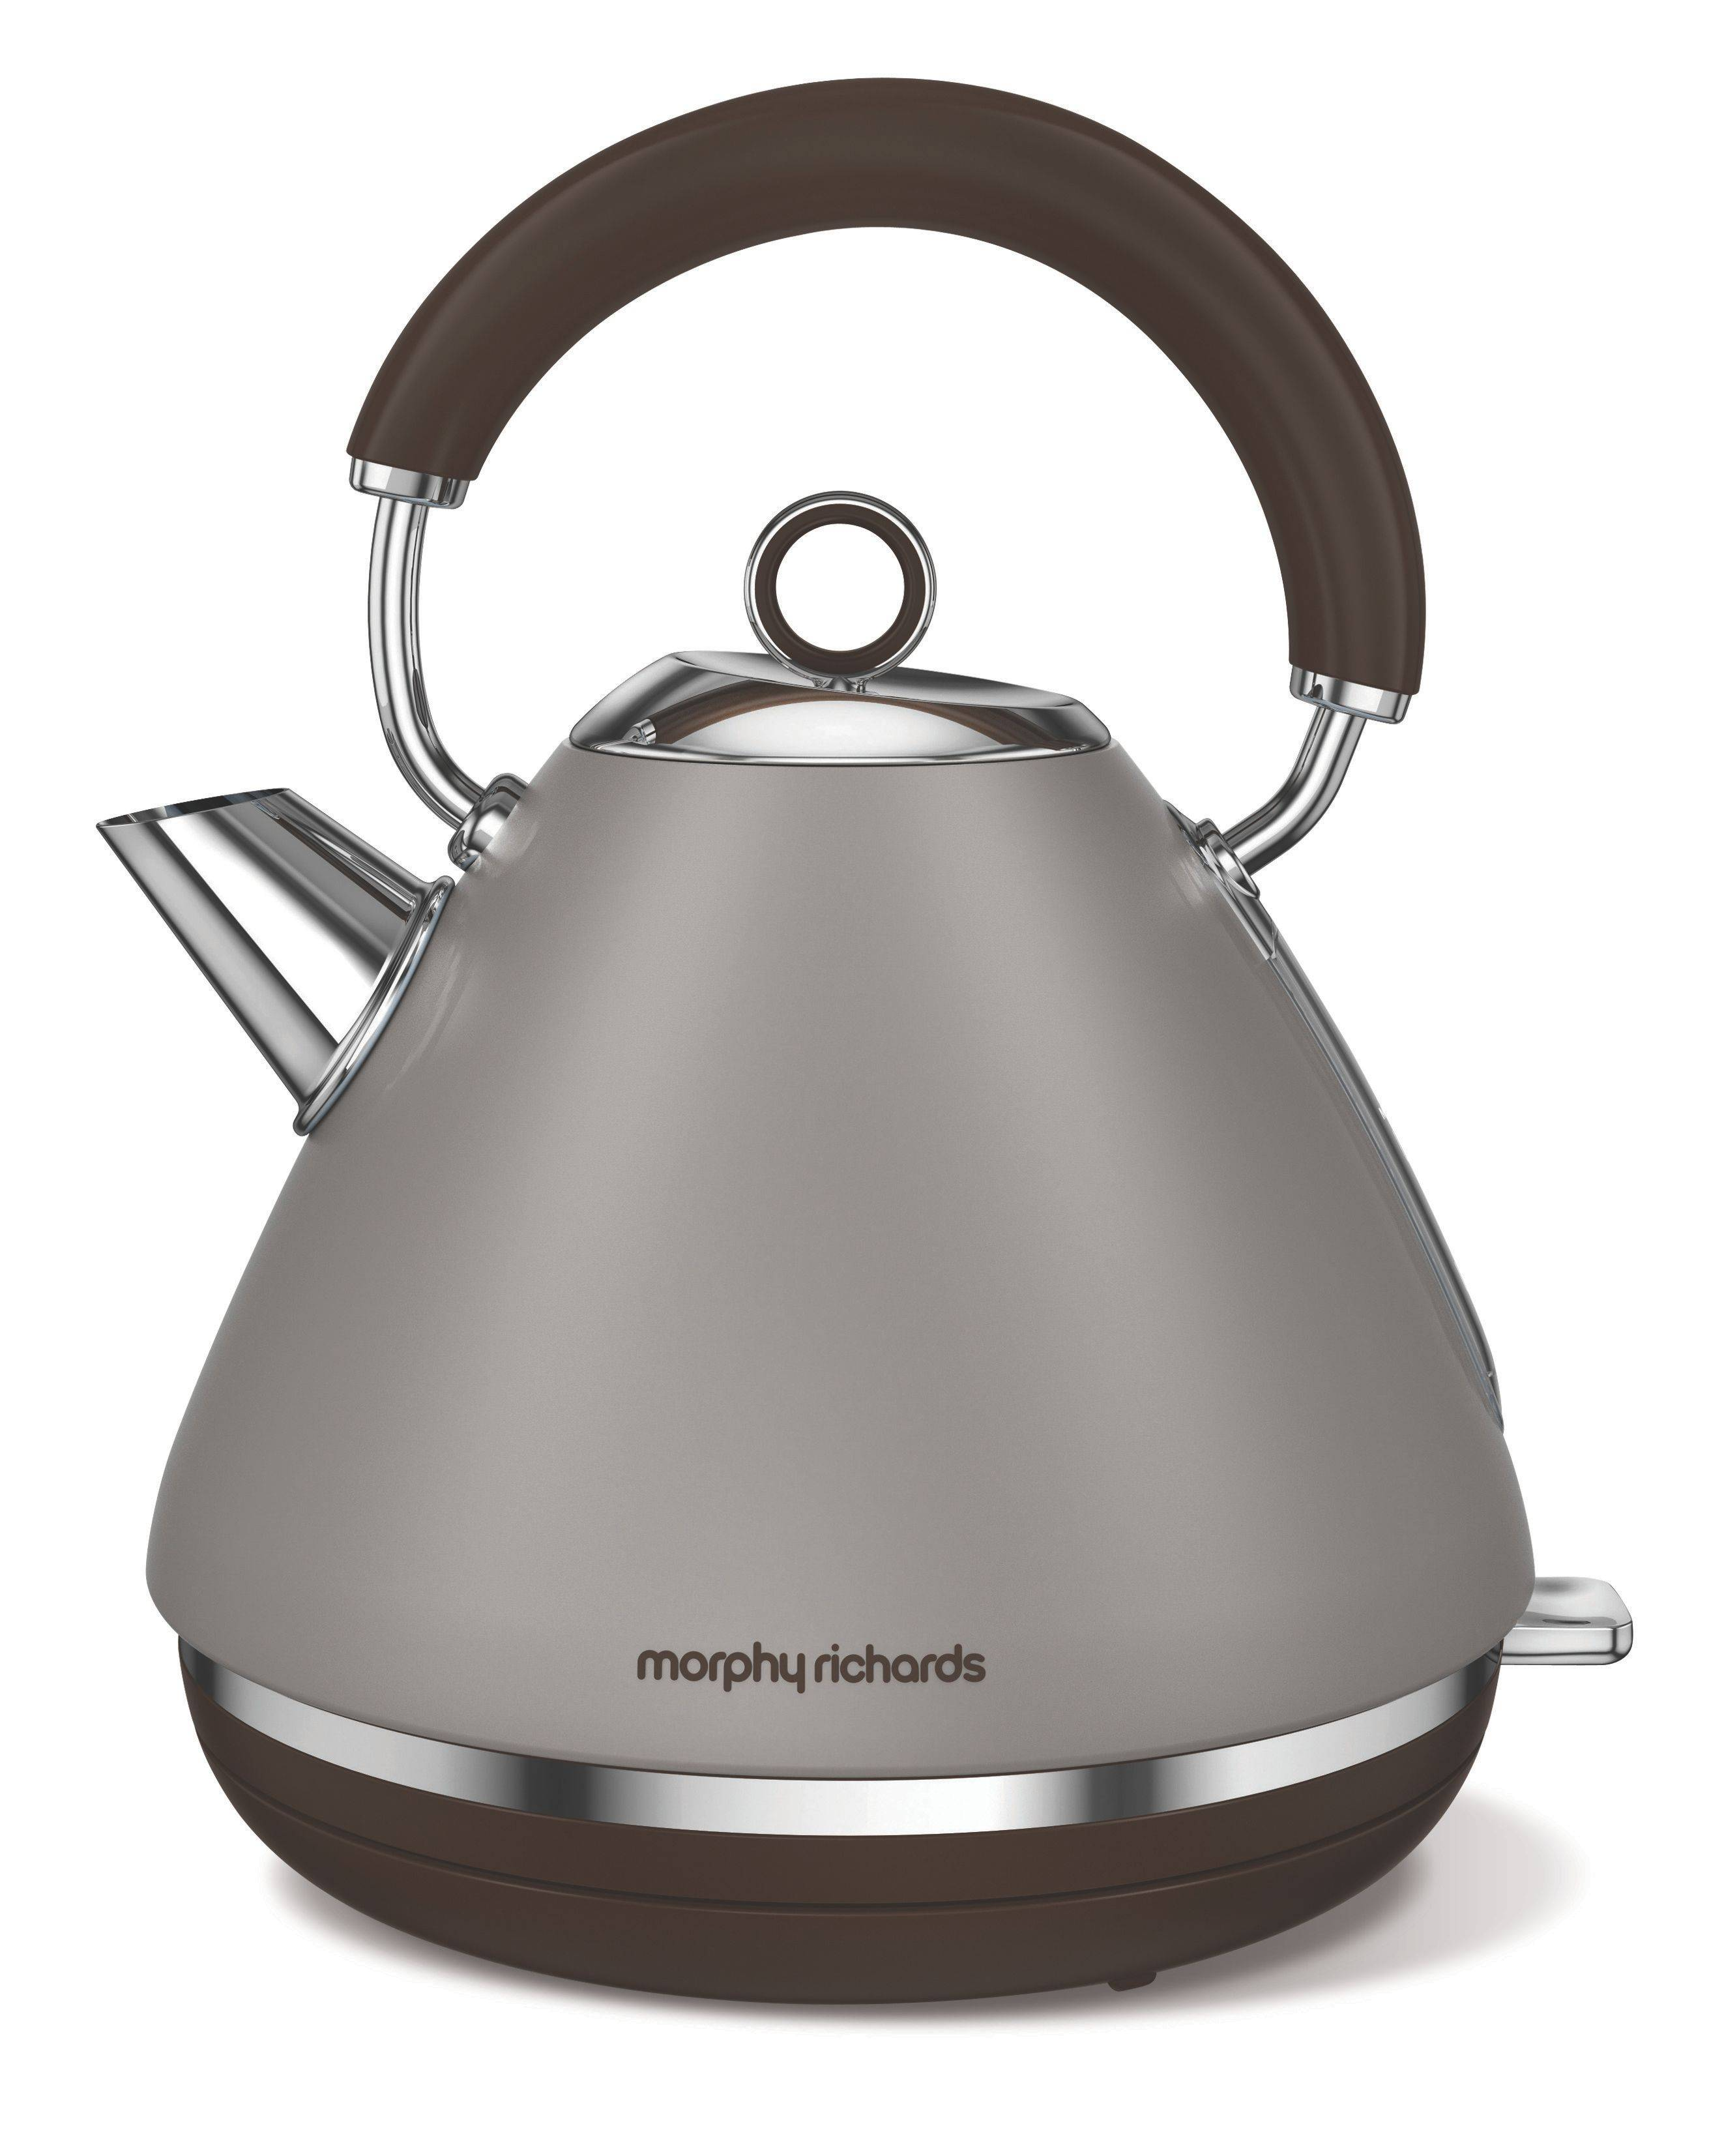 Morphy Richards Accents Special Edition Pyramid Kettle, Pebble